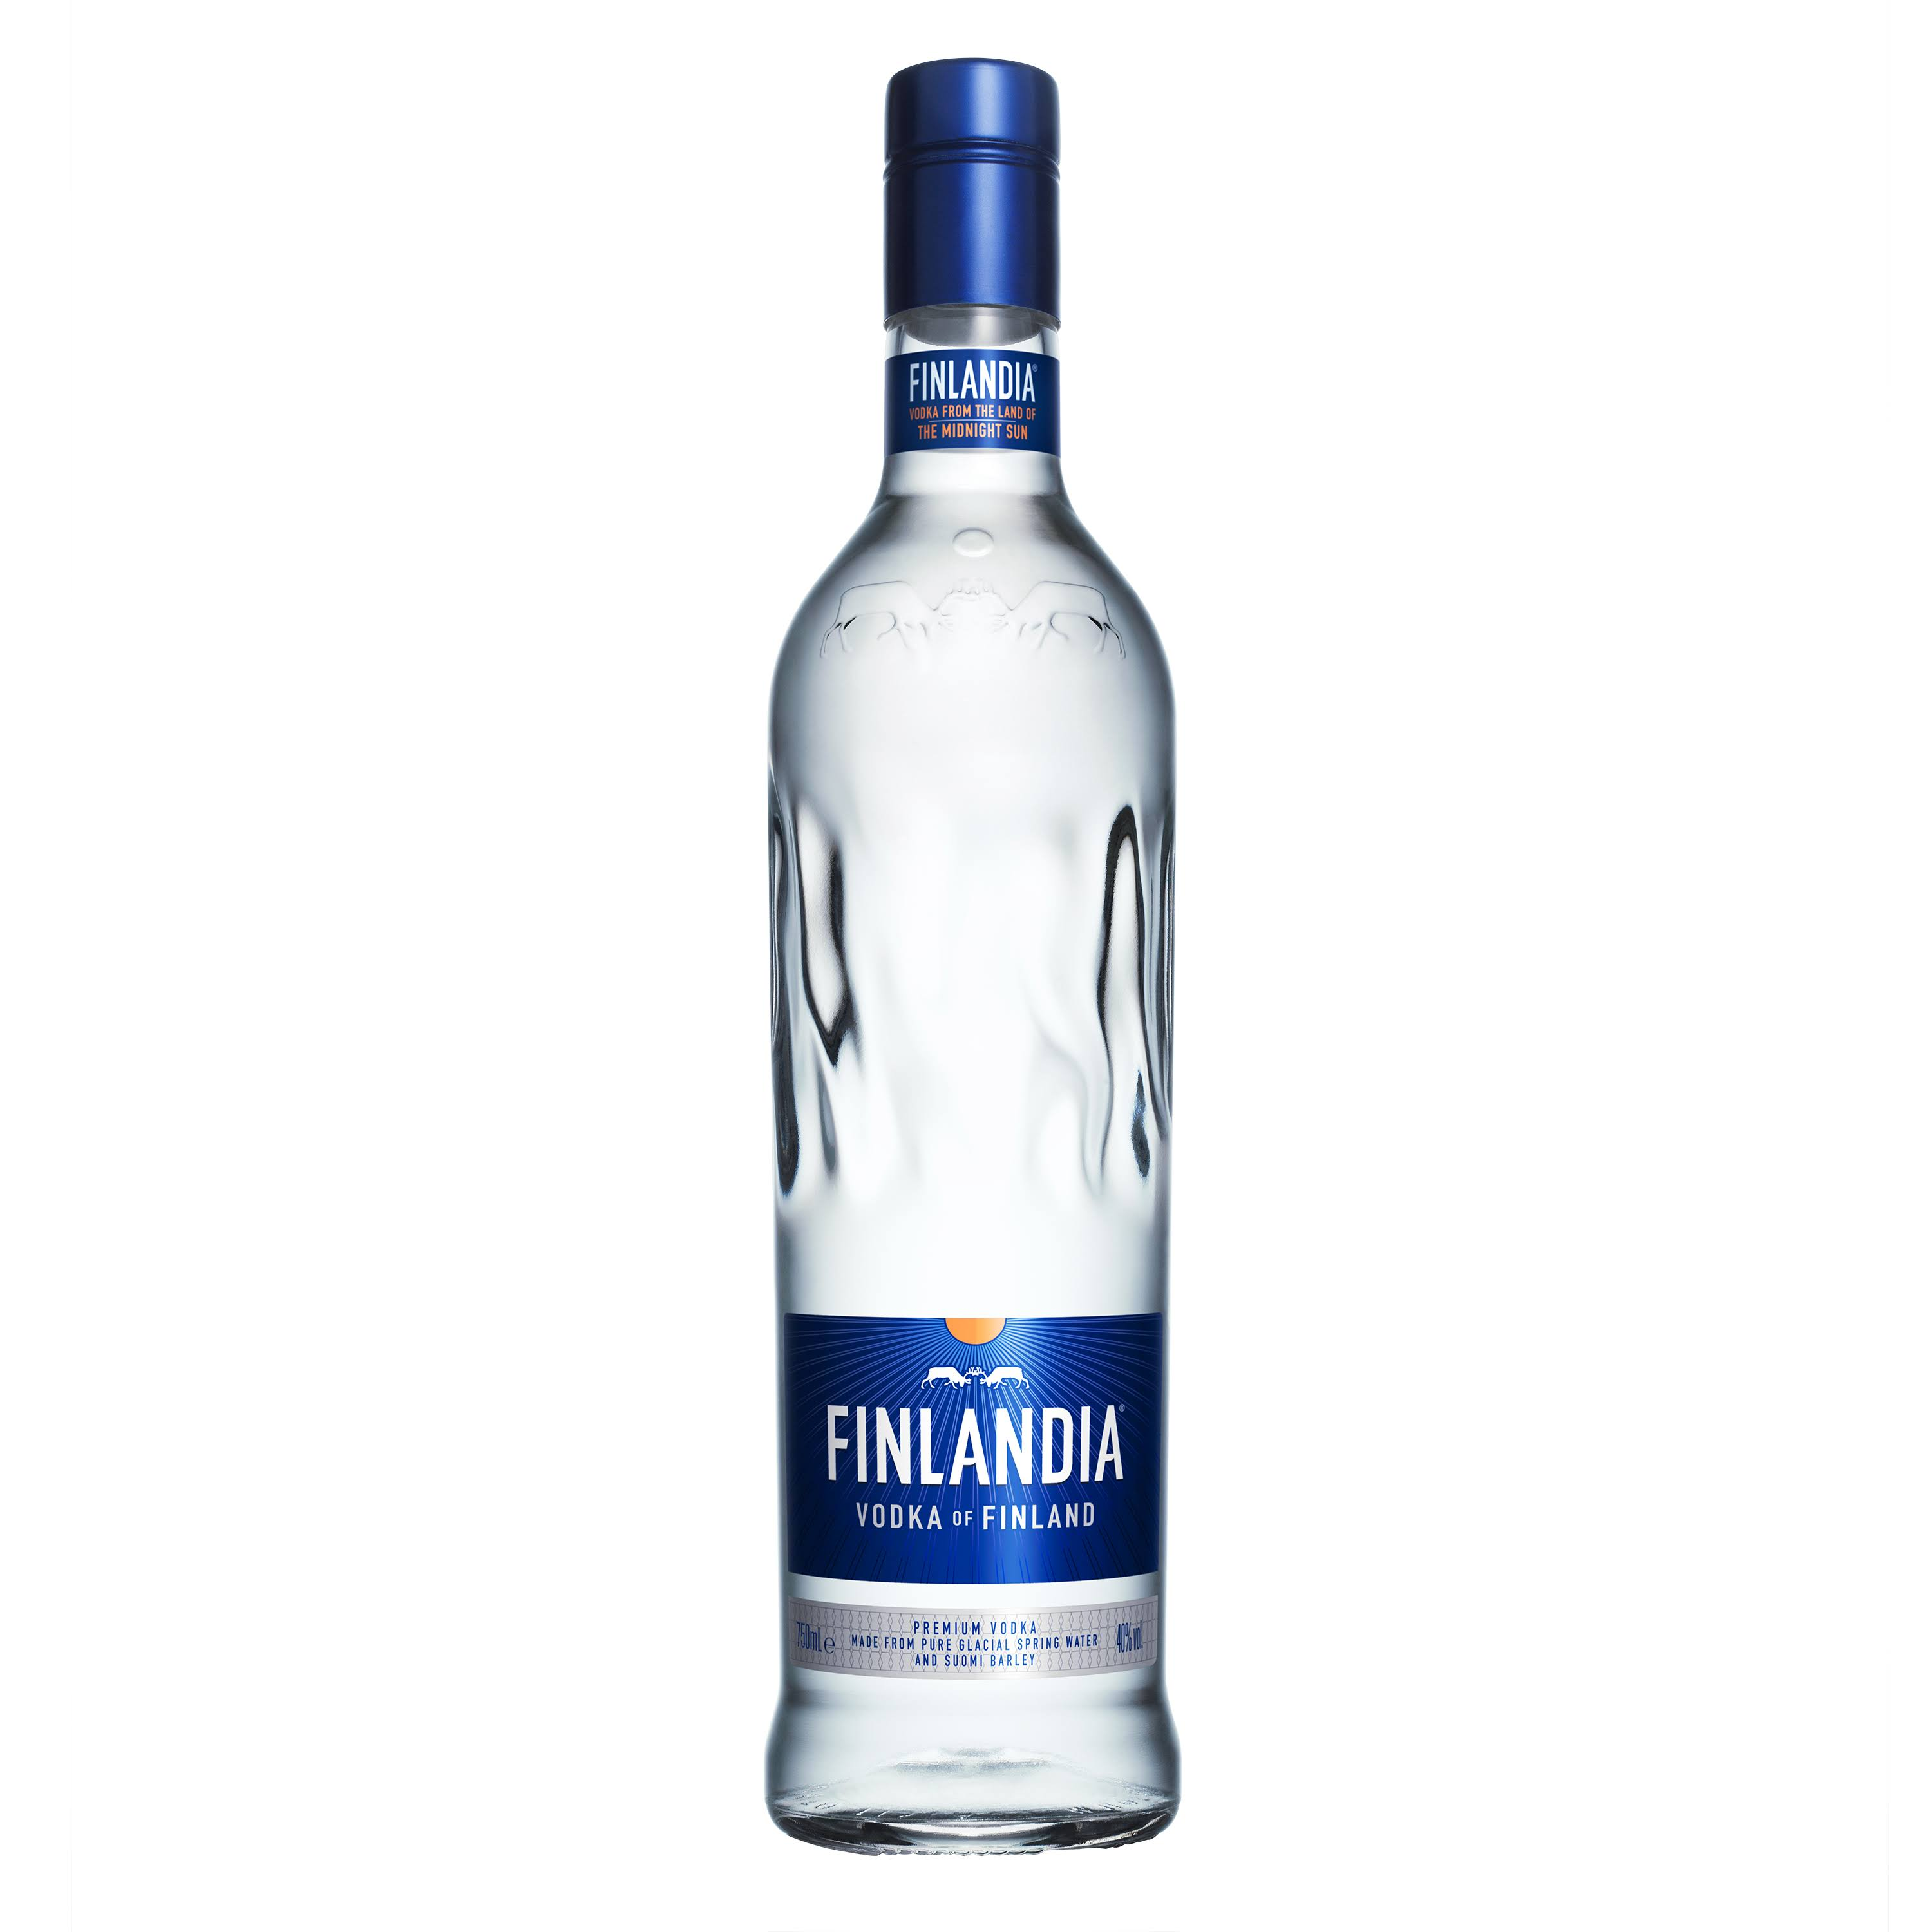 Finlandia Vodka - 750 ml bottle